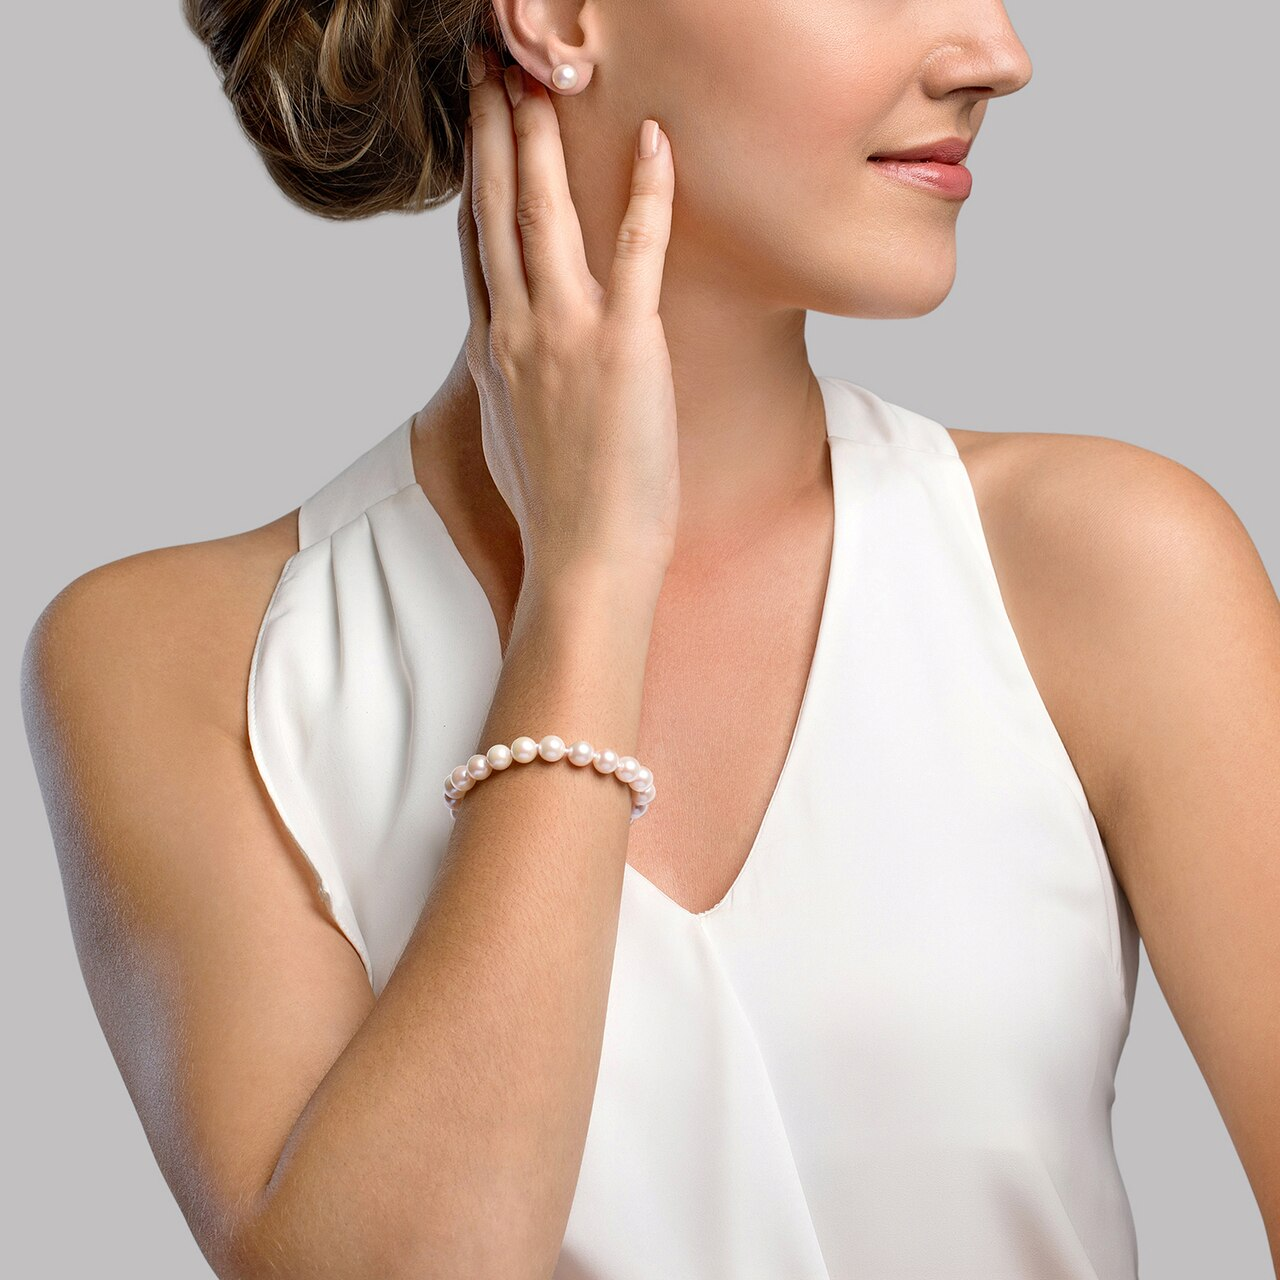 This elegant bracelet features 7.0-7.5mm Japanese Akoya pearls, handpicked for their luminous luster